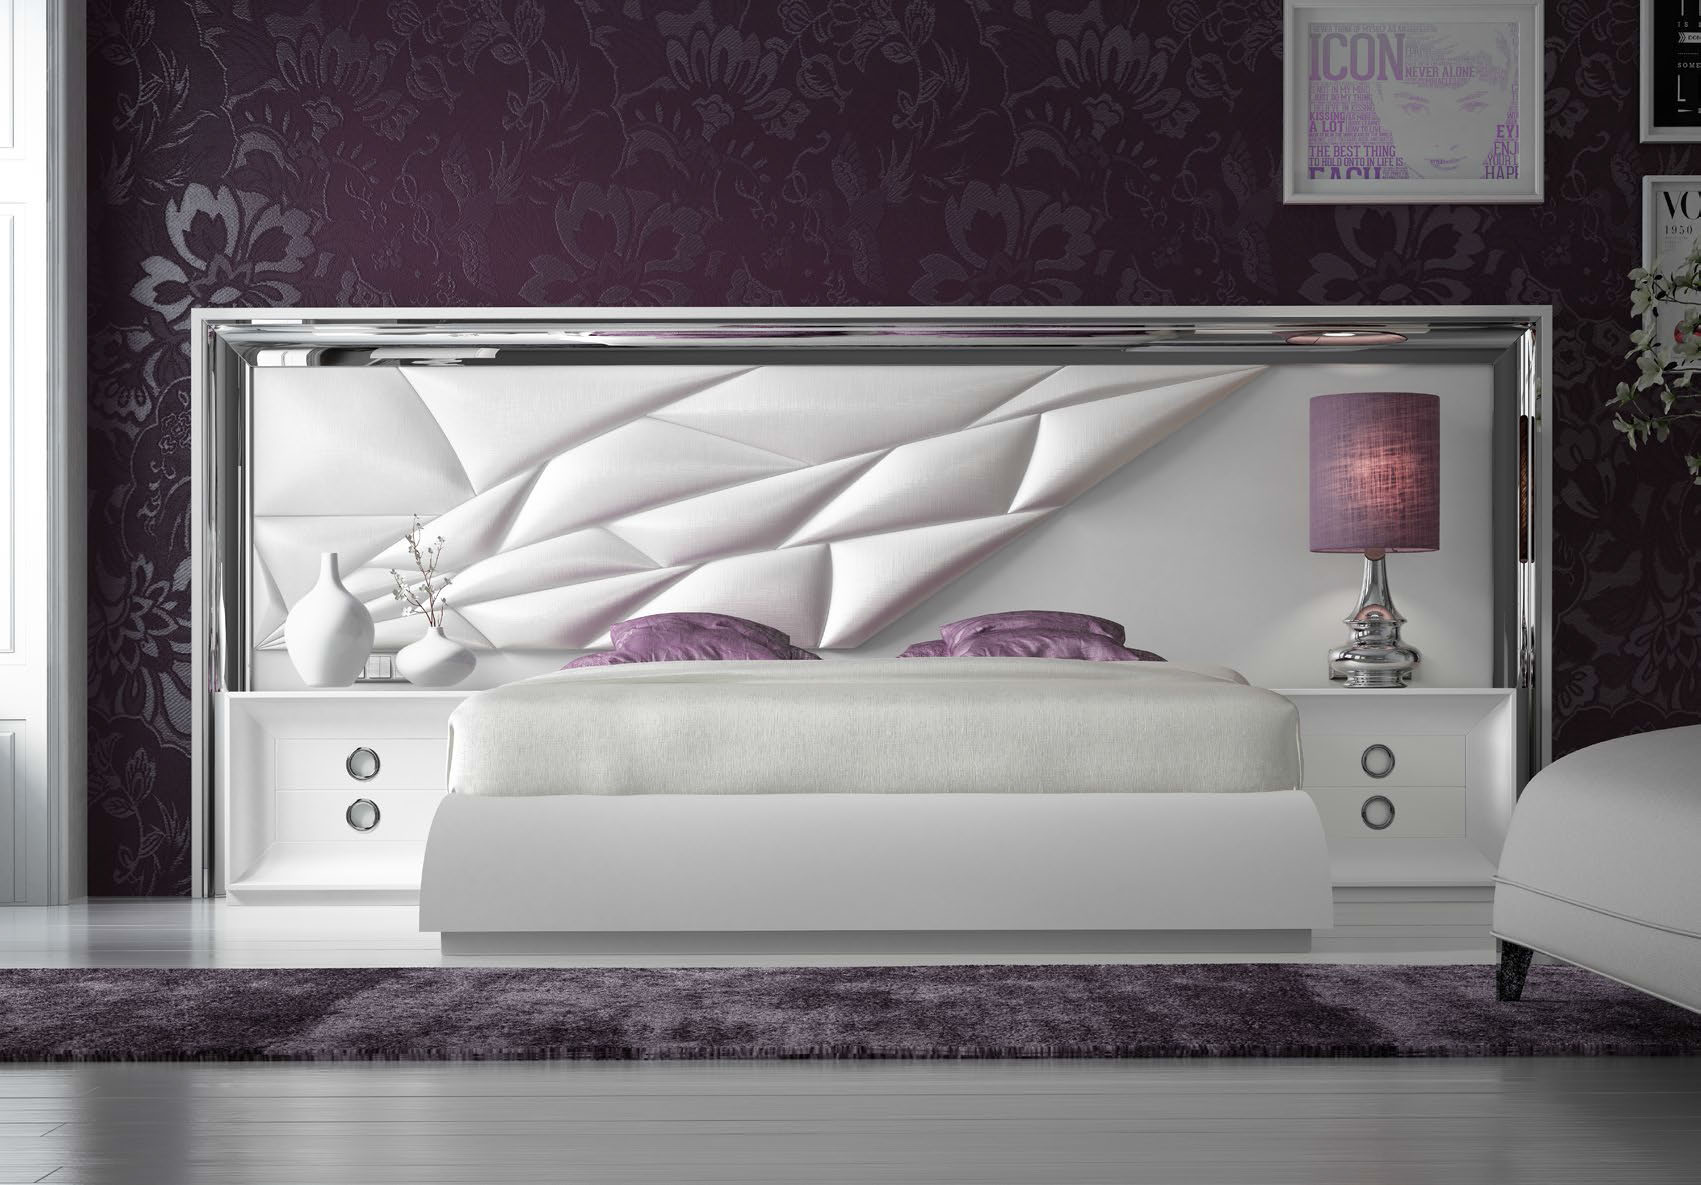 Brands Franco Furniture Bedrooms vol2, Spain DOR 92